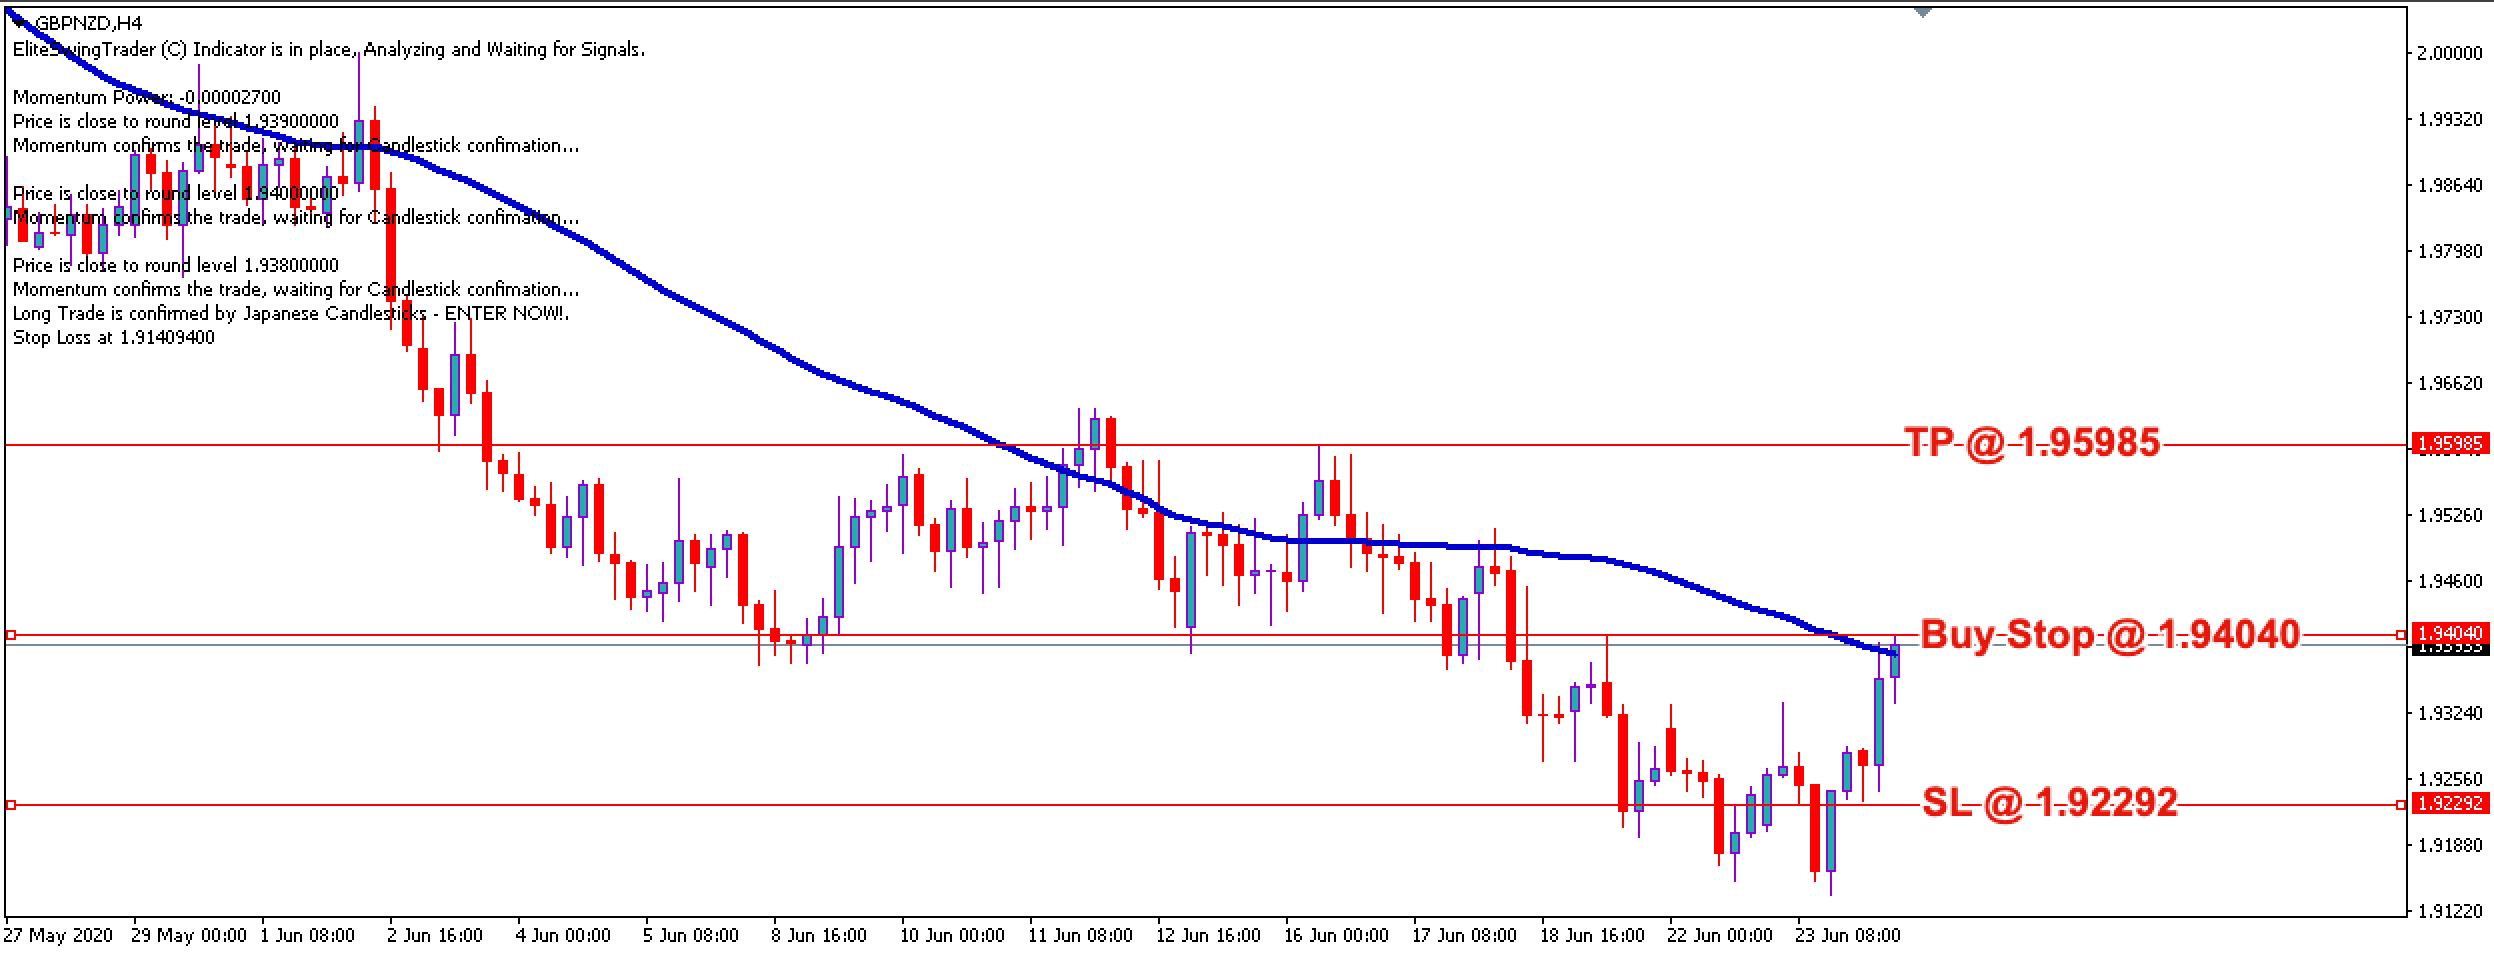 GBP/NZD Free Forex Trading Signals - 24th June 2020